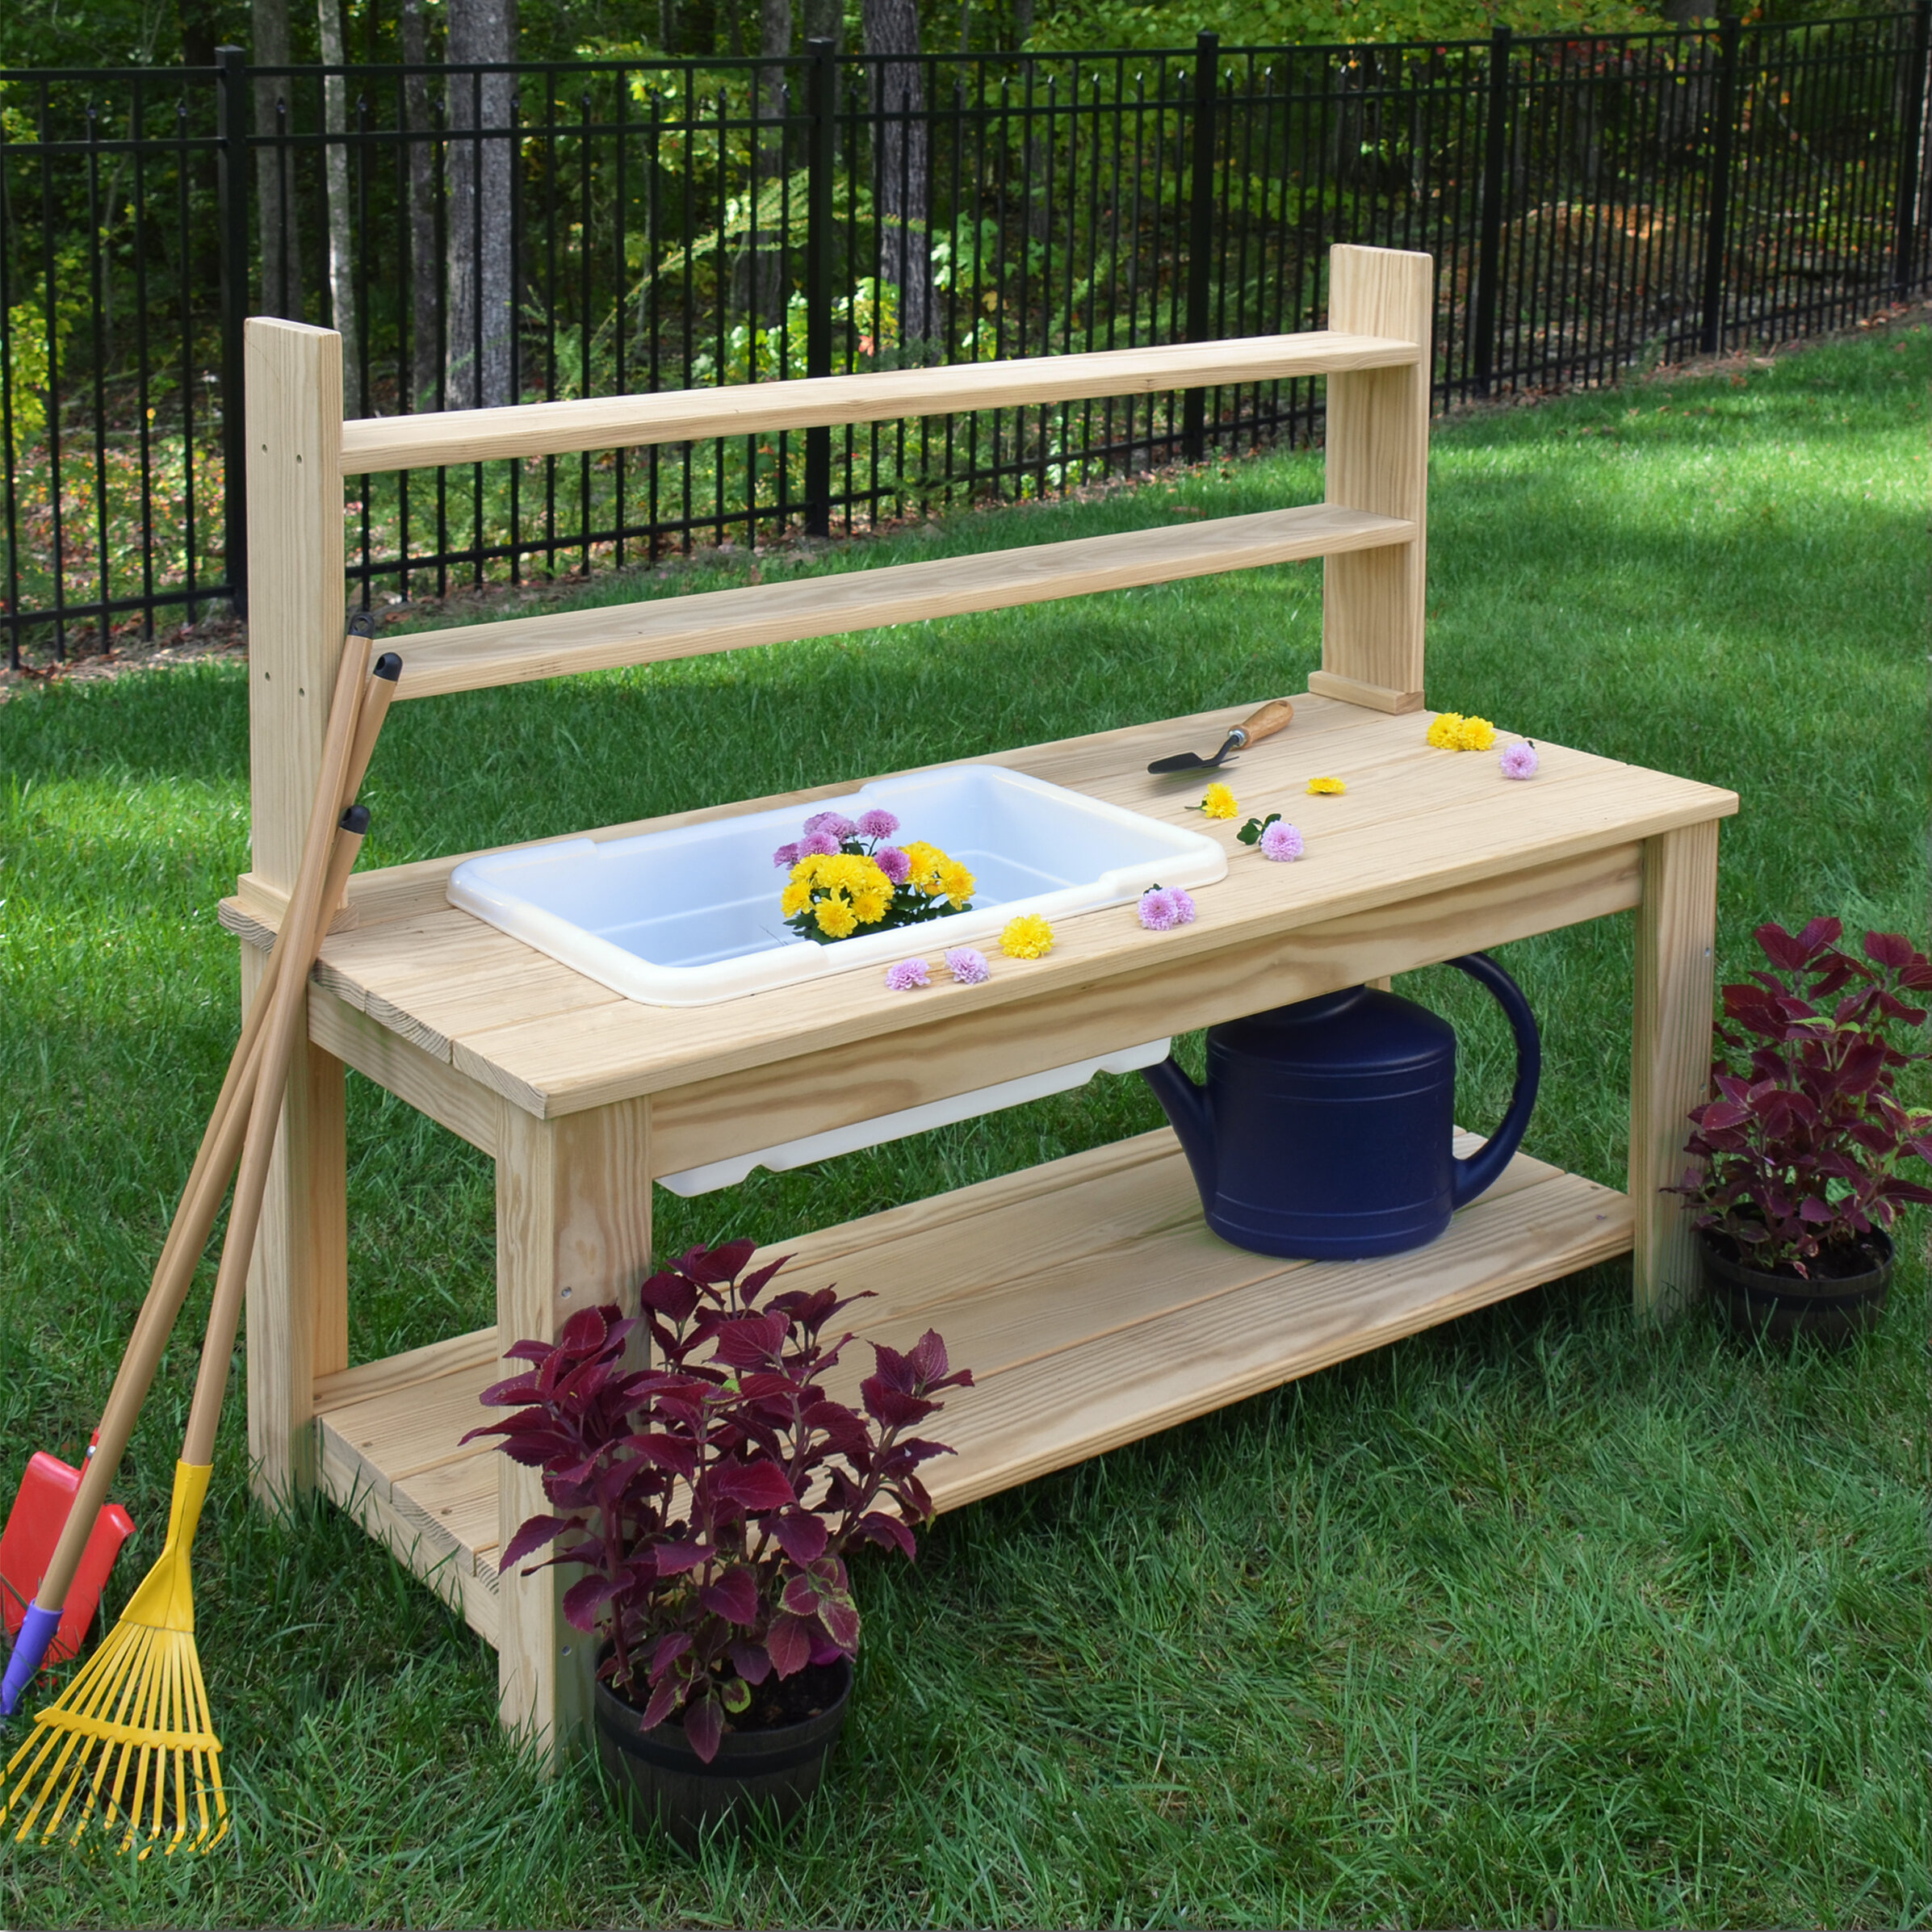 Lakewood 3 Person Swing, Wood Designs Farmhouse Wood Potting Bench Wayfair